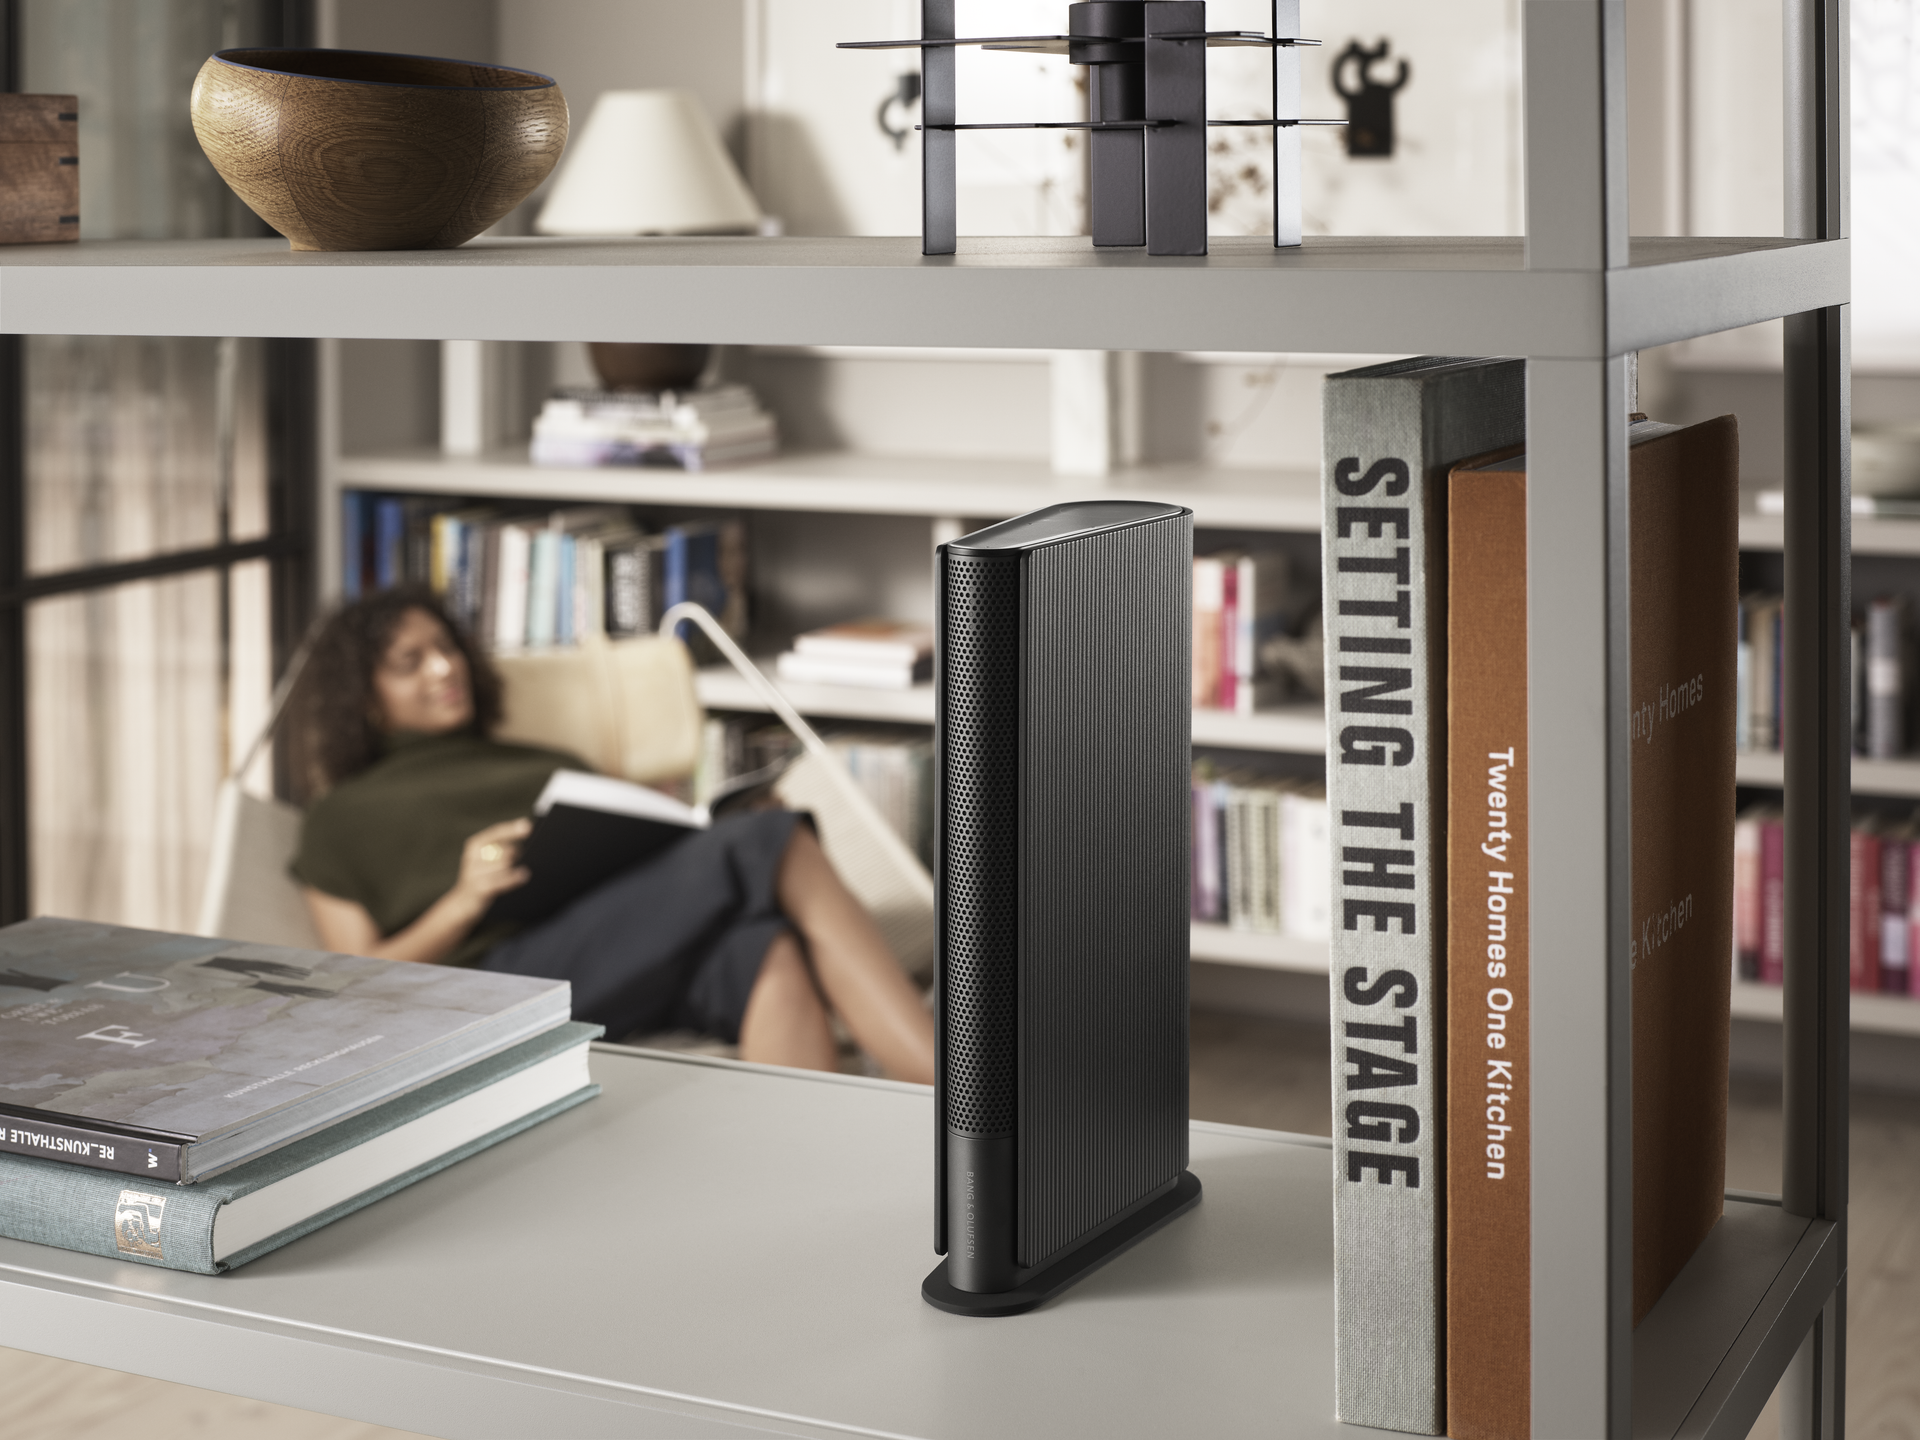 A room-filling bookshelf speaker inspired by the compact form factor of a book